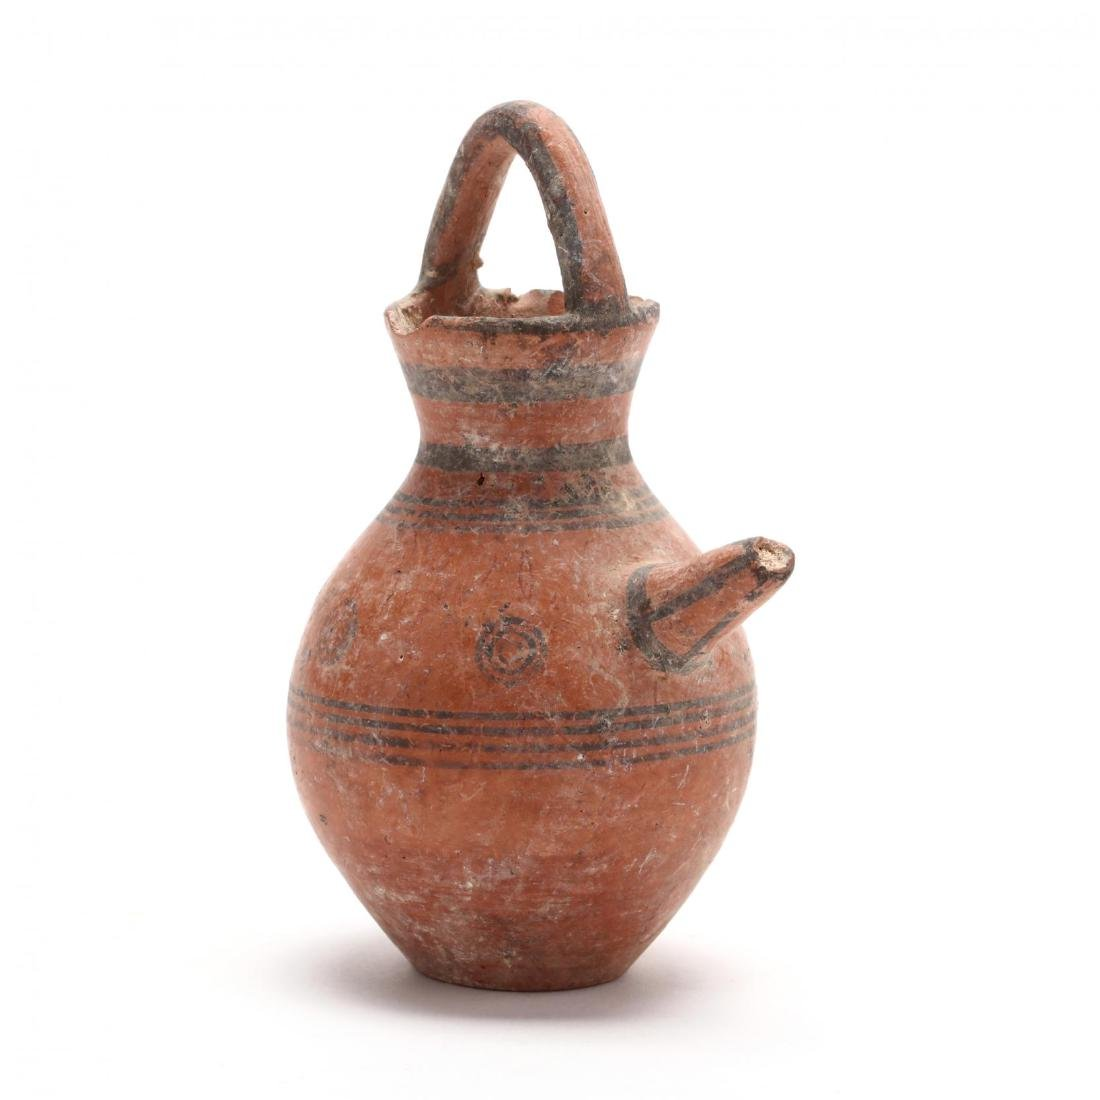 Cypriot Red Ware Juglet With Spout